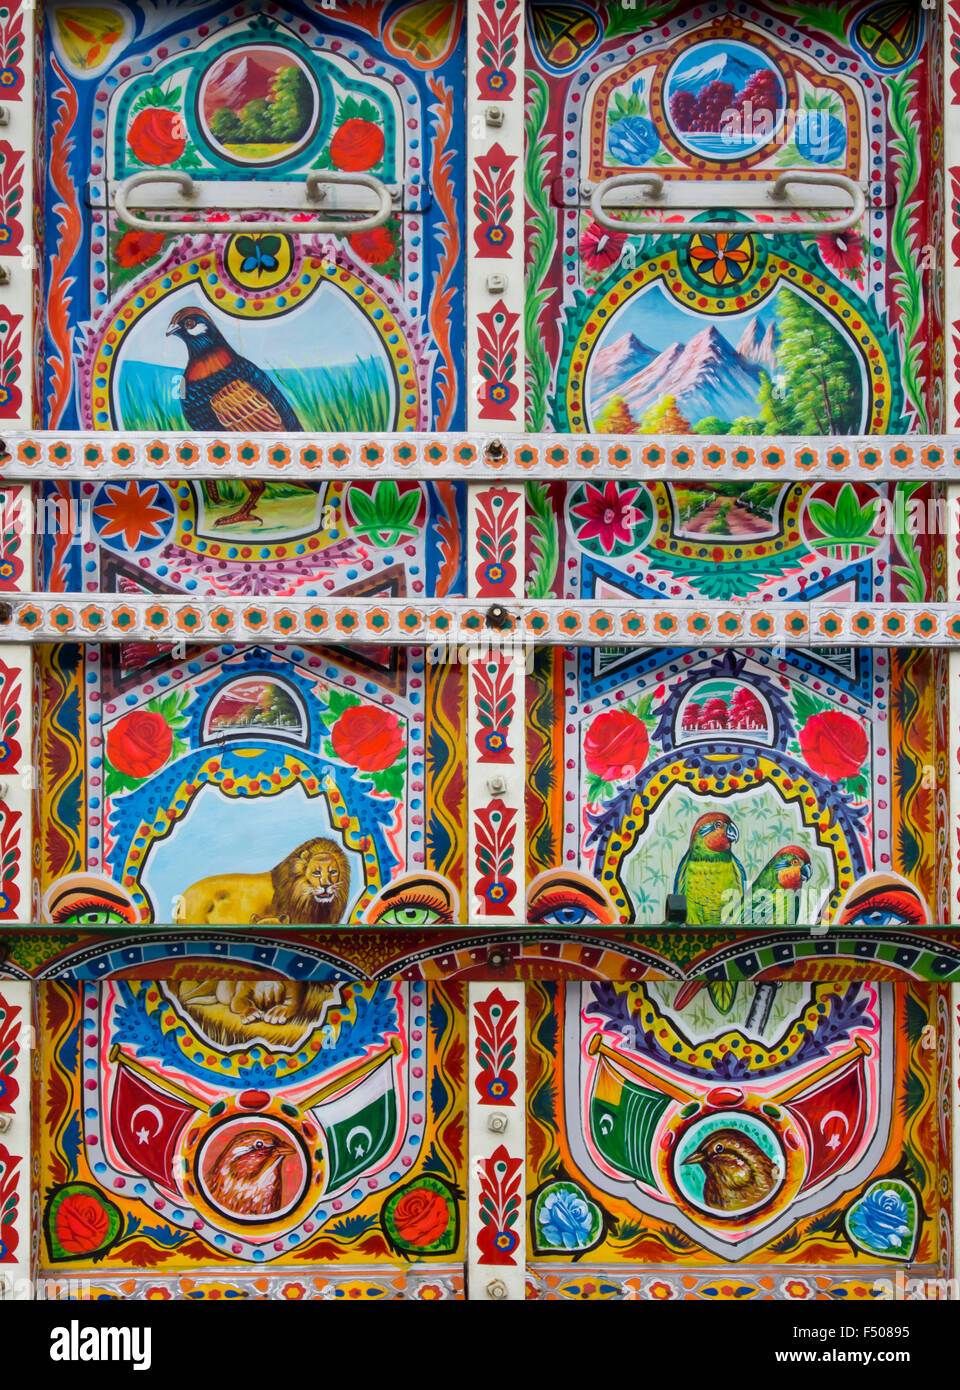 Details from an elaborate and artistically decorated colourful Bedford truck in Pakistani  style, animal motifs - Stock Image